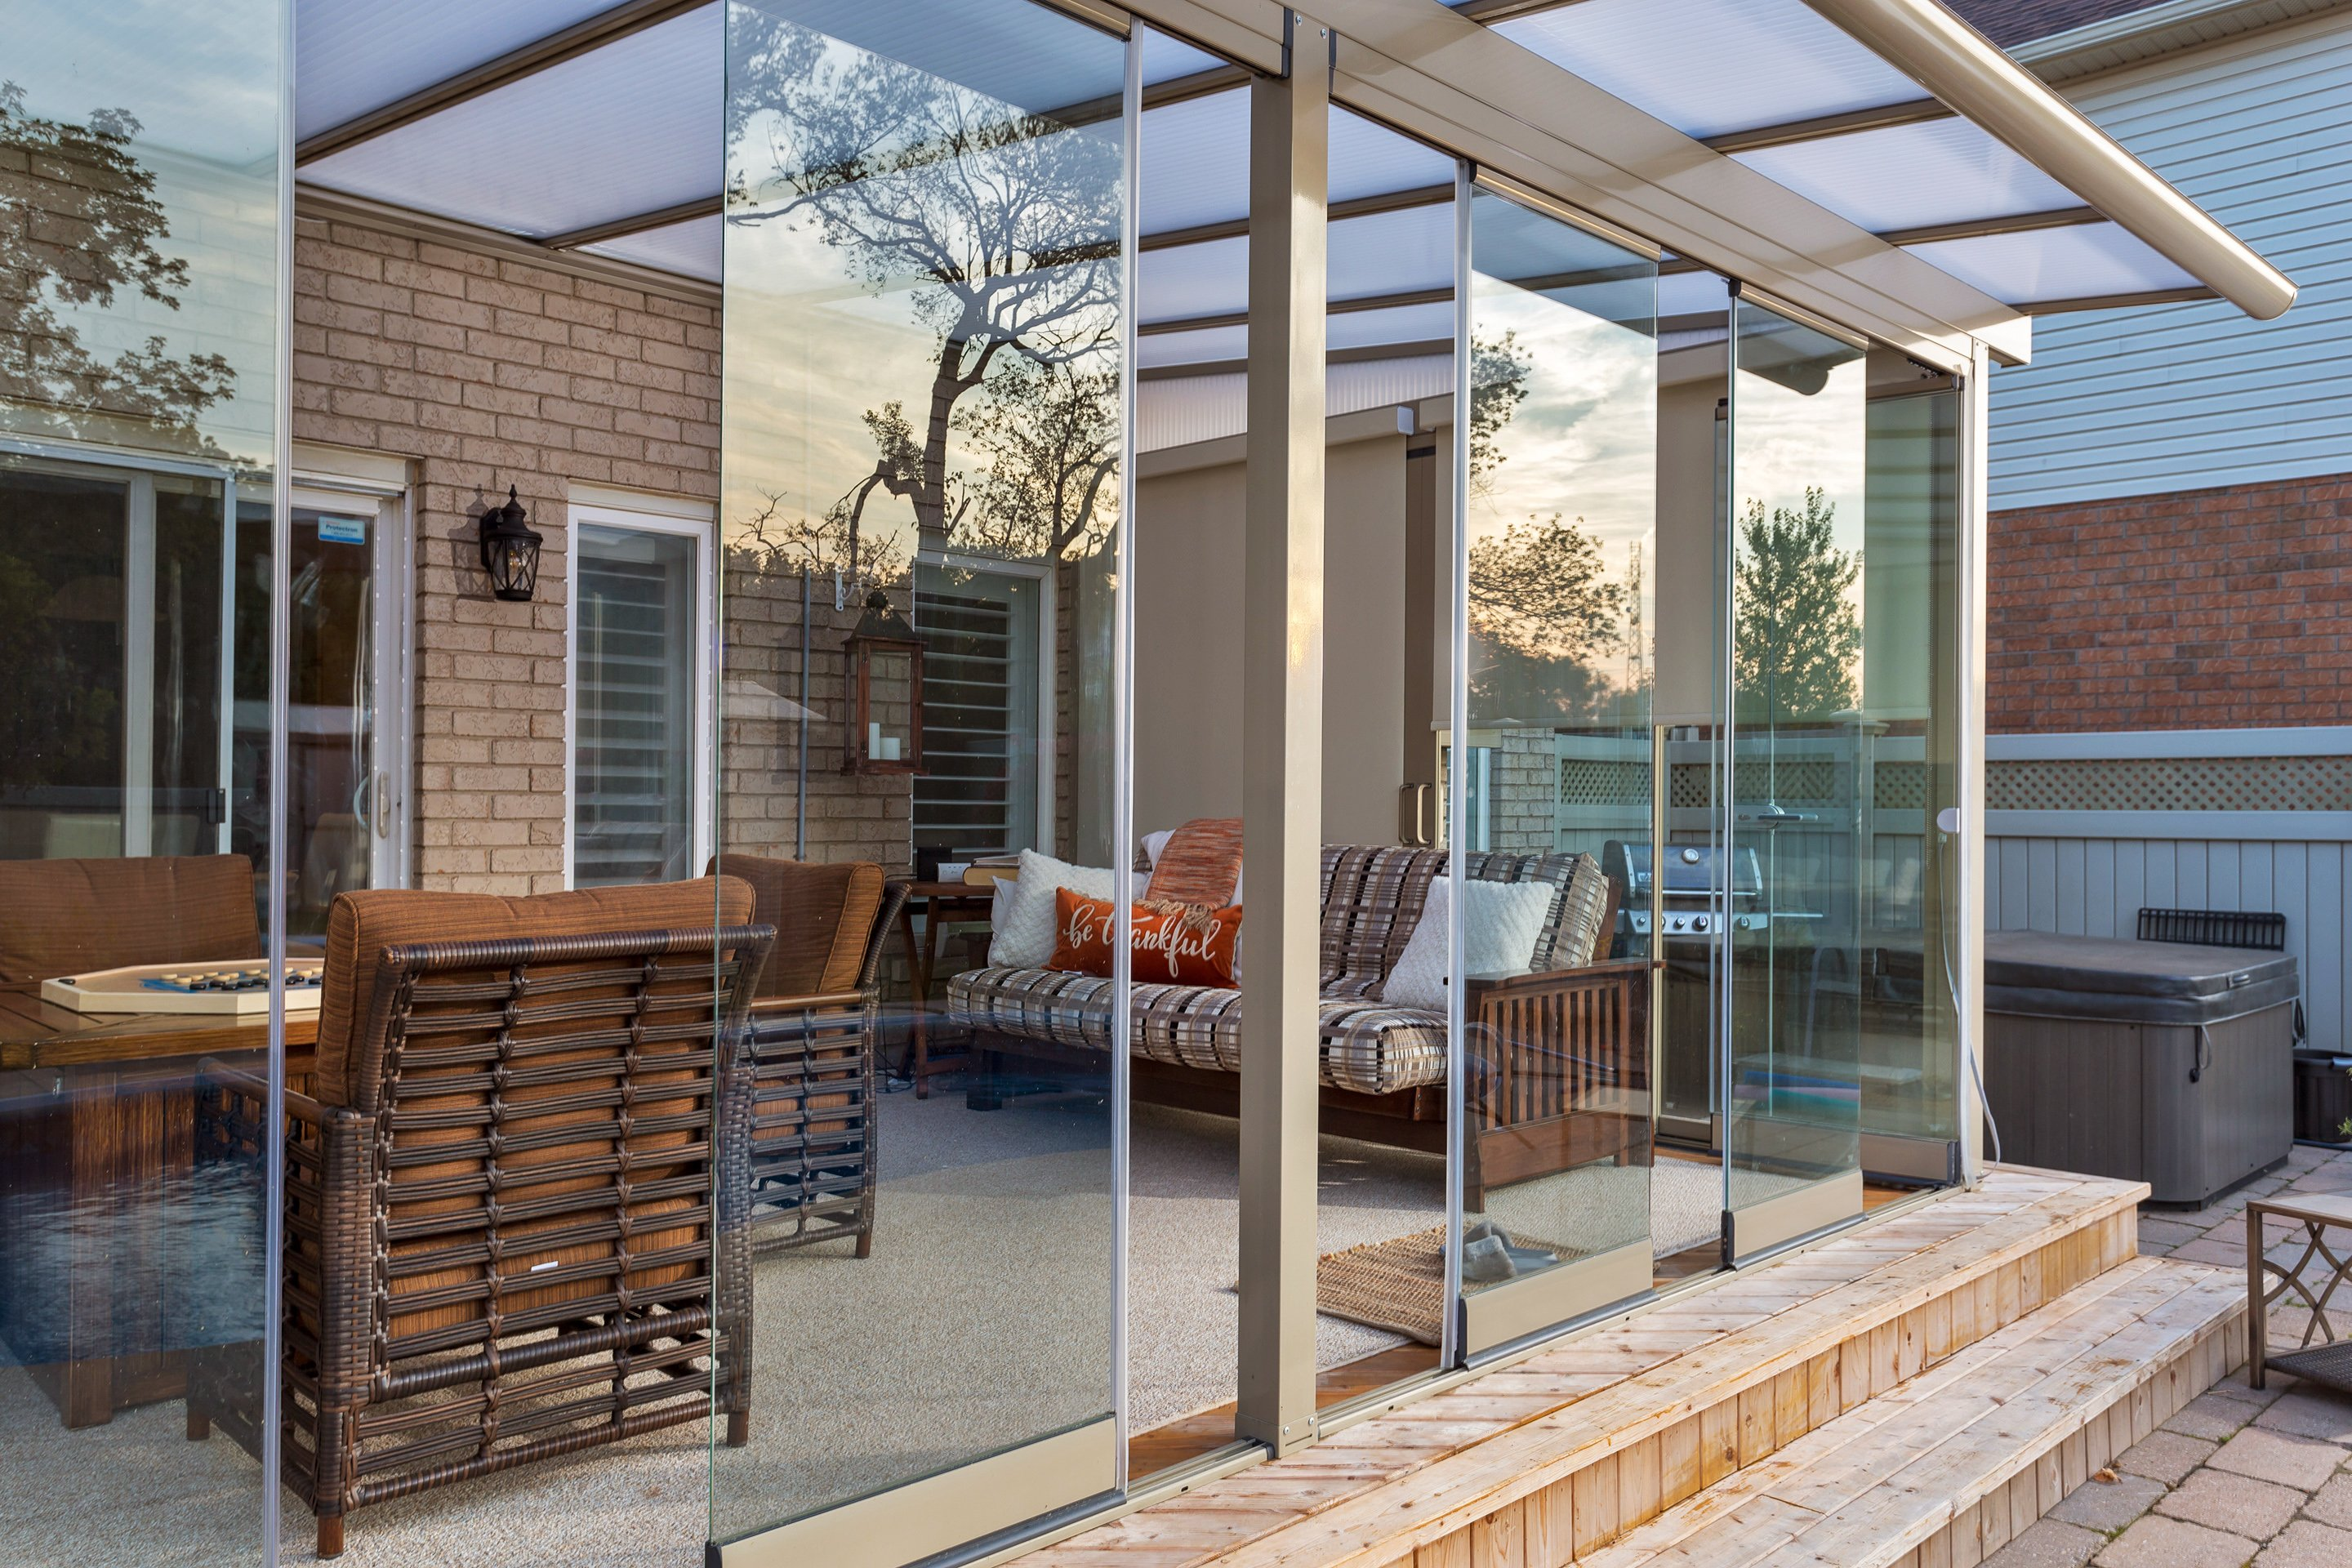 sunroom, sunroom enclosure, retractable glass walls, sliding glass, sliding glass wall, sliding glass walls, glass enclosure, glass enclosures, glass walls,, retractable walls, tempered glass wall, tempered glass walls, frameless retractable glass,